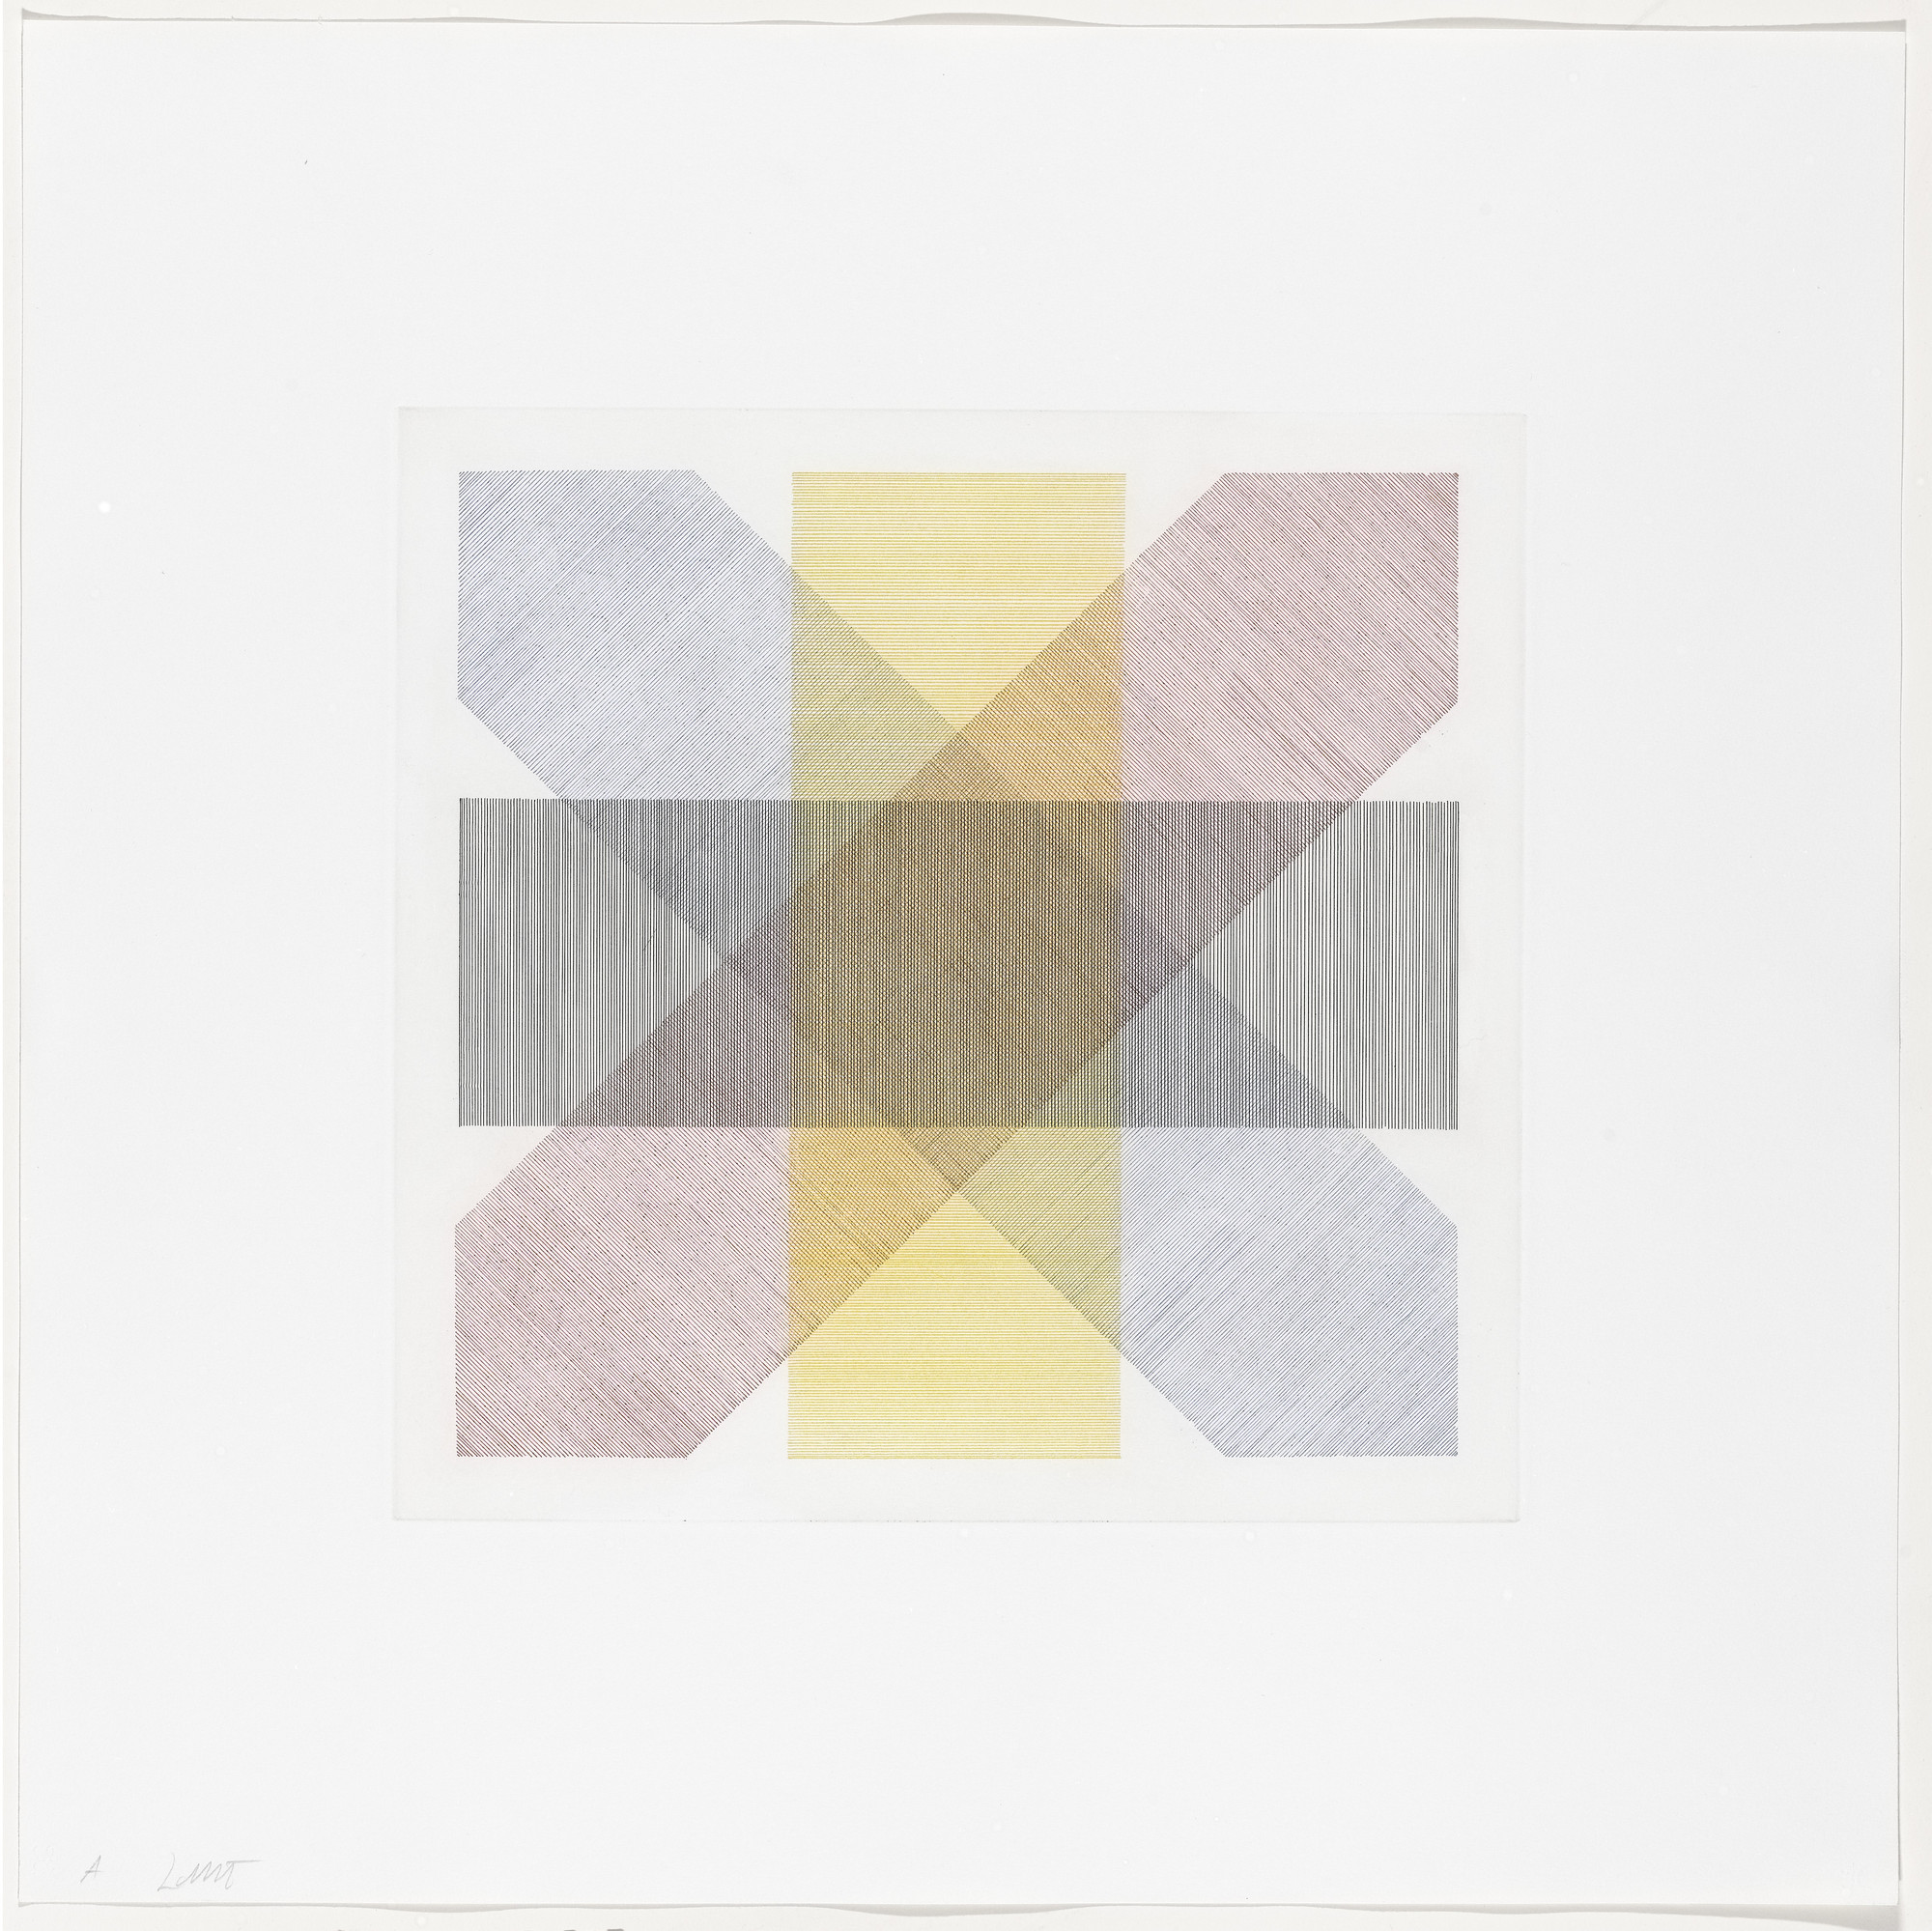 Sol LeWitt. Untitled from Bands of Color in Four Directions & All Combinations. 1971